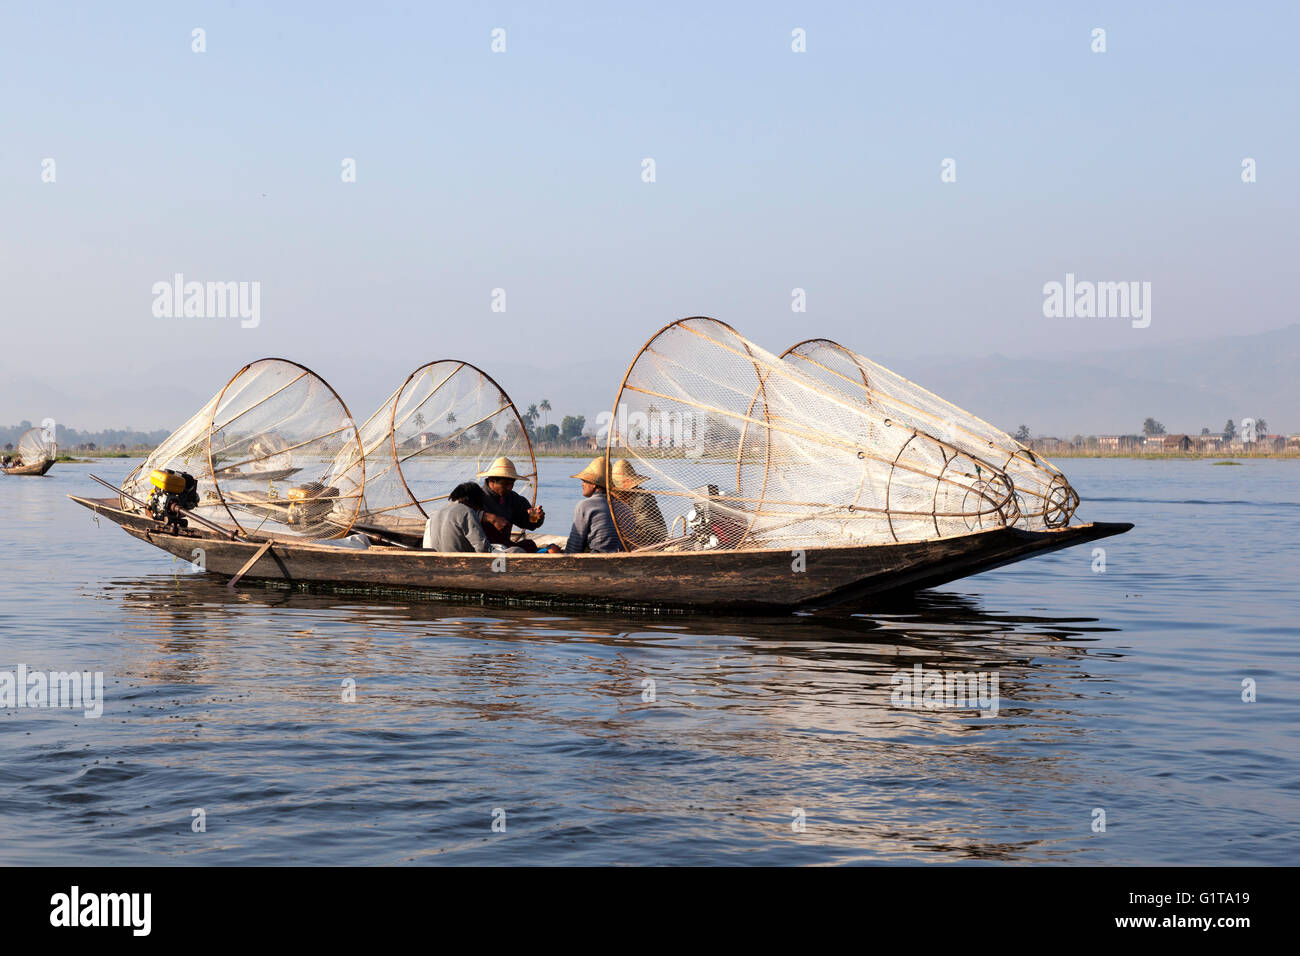 On the Inle Lake, two motorized pirogues anchored side by side with fishermen resting a while (Myanmar). - Stock Image